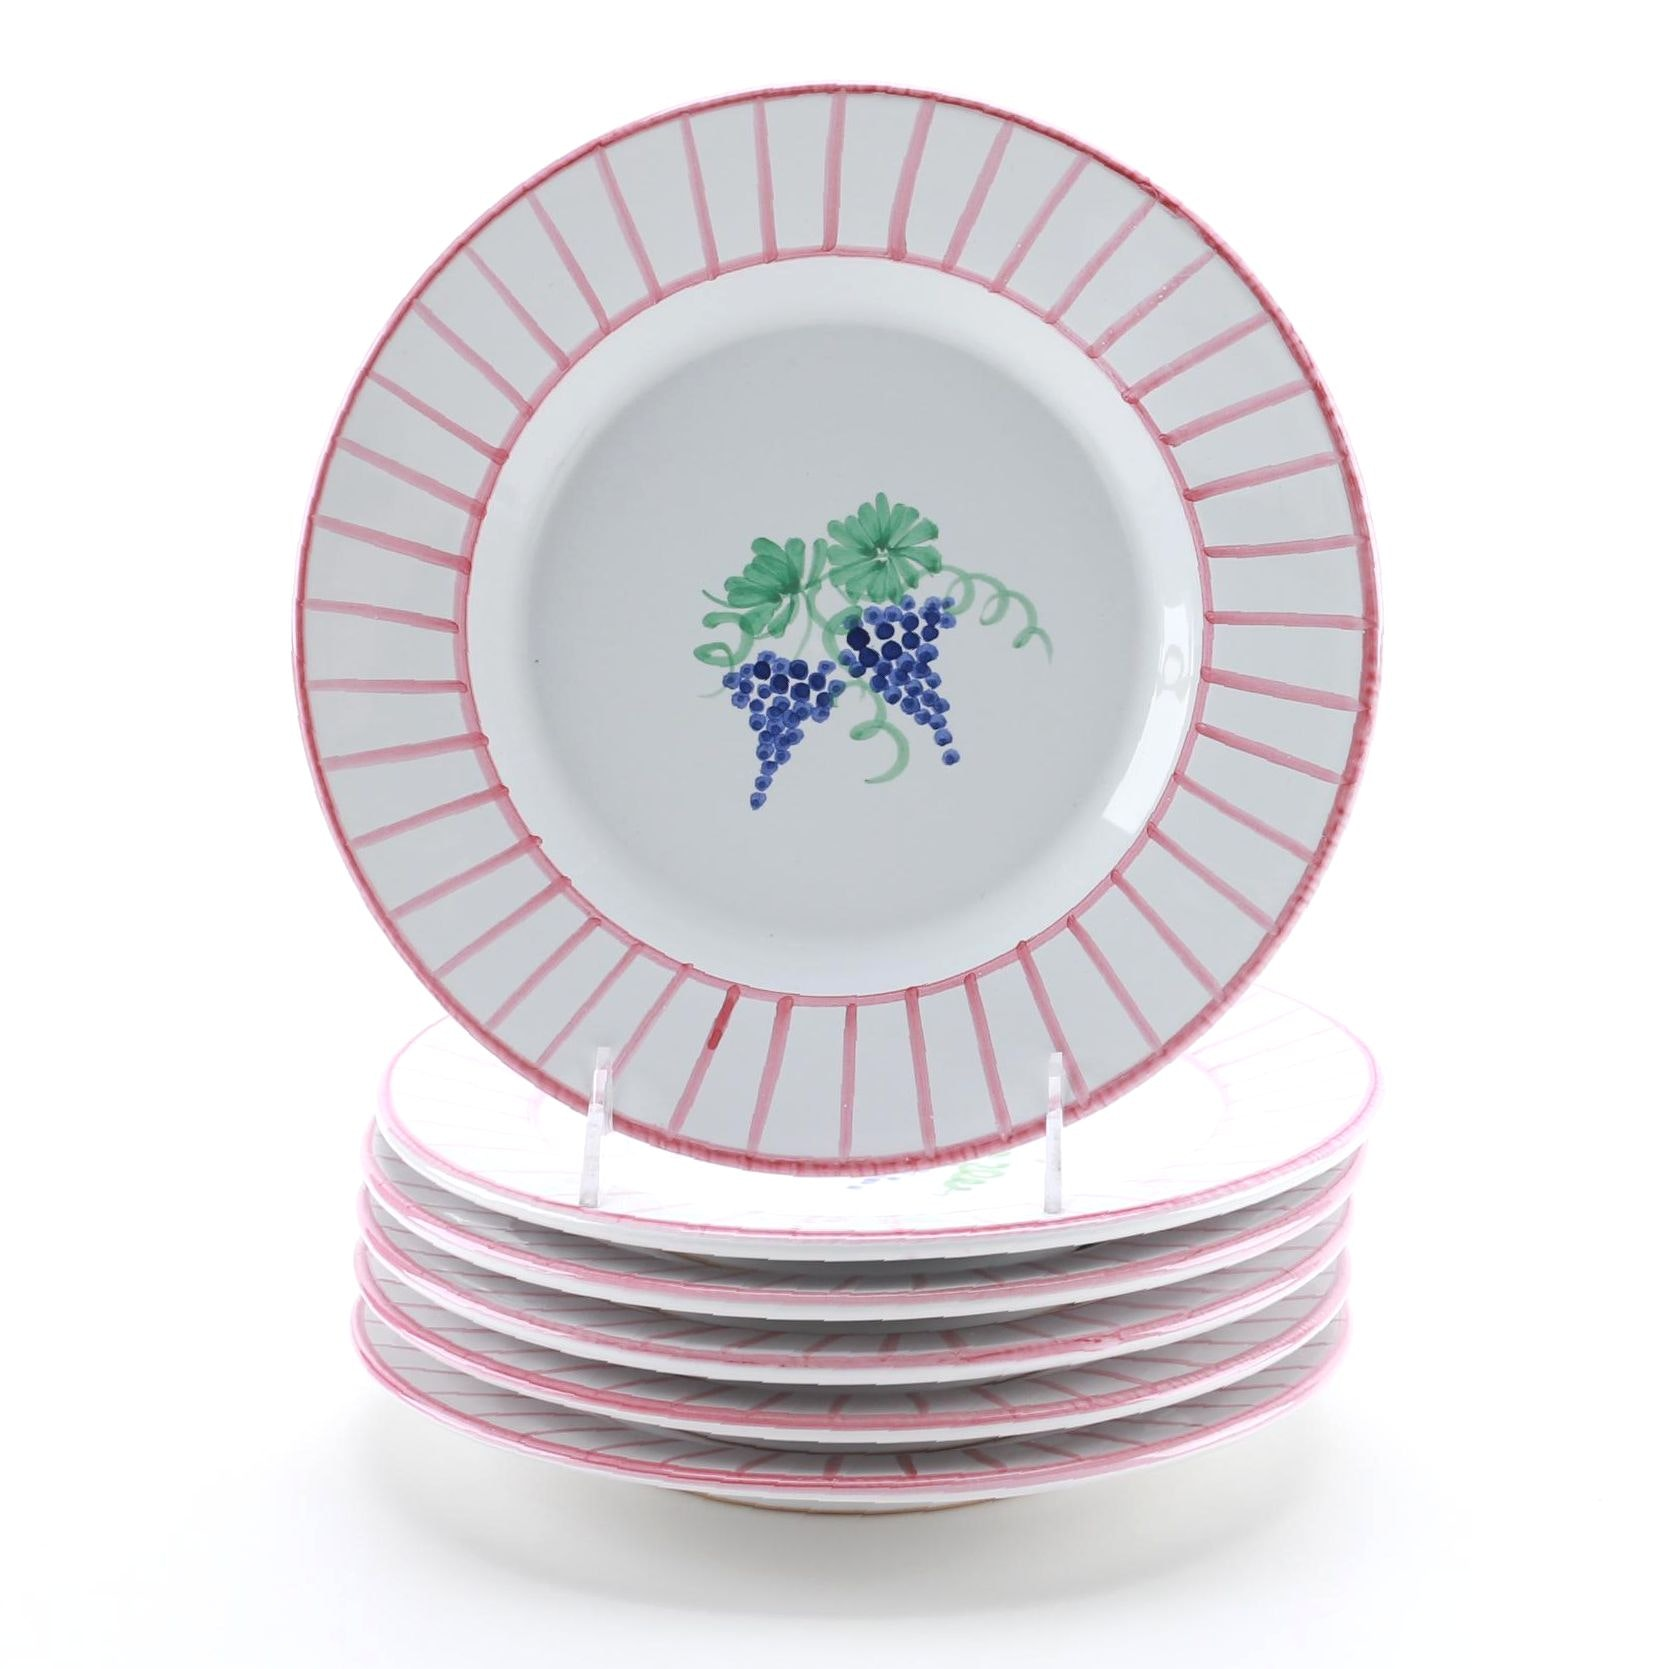 Collection of Grape Pattern Plates From Italy ...  sc 1 st  EBTH.com & Collection of Grape Pattern Plates From Italy : EBTH